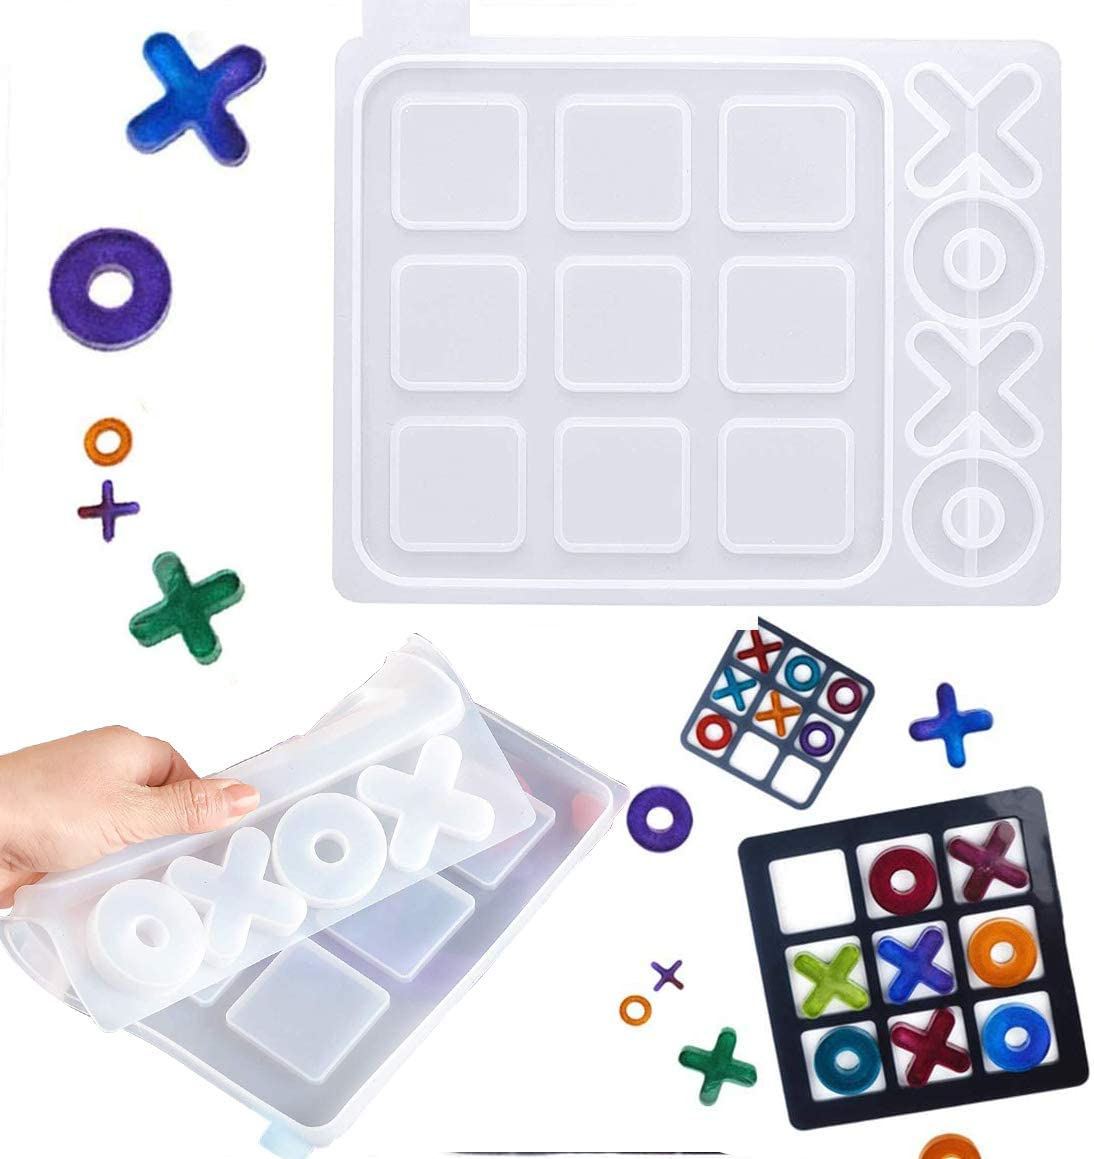 HZMM Tic Tac Toe Max 61% OFF Silicone Ranking integrated 1st place Mold Epoxy Games O R Board X